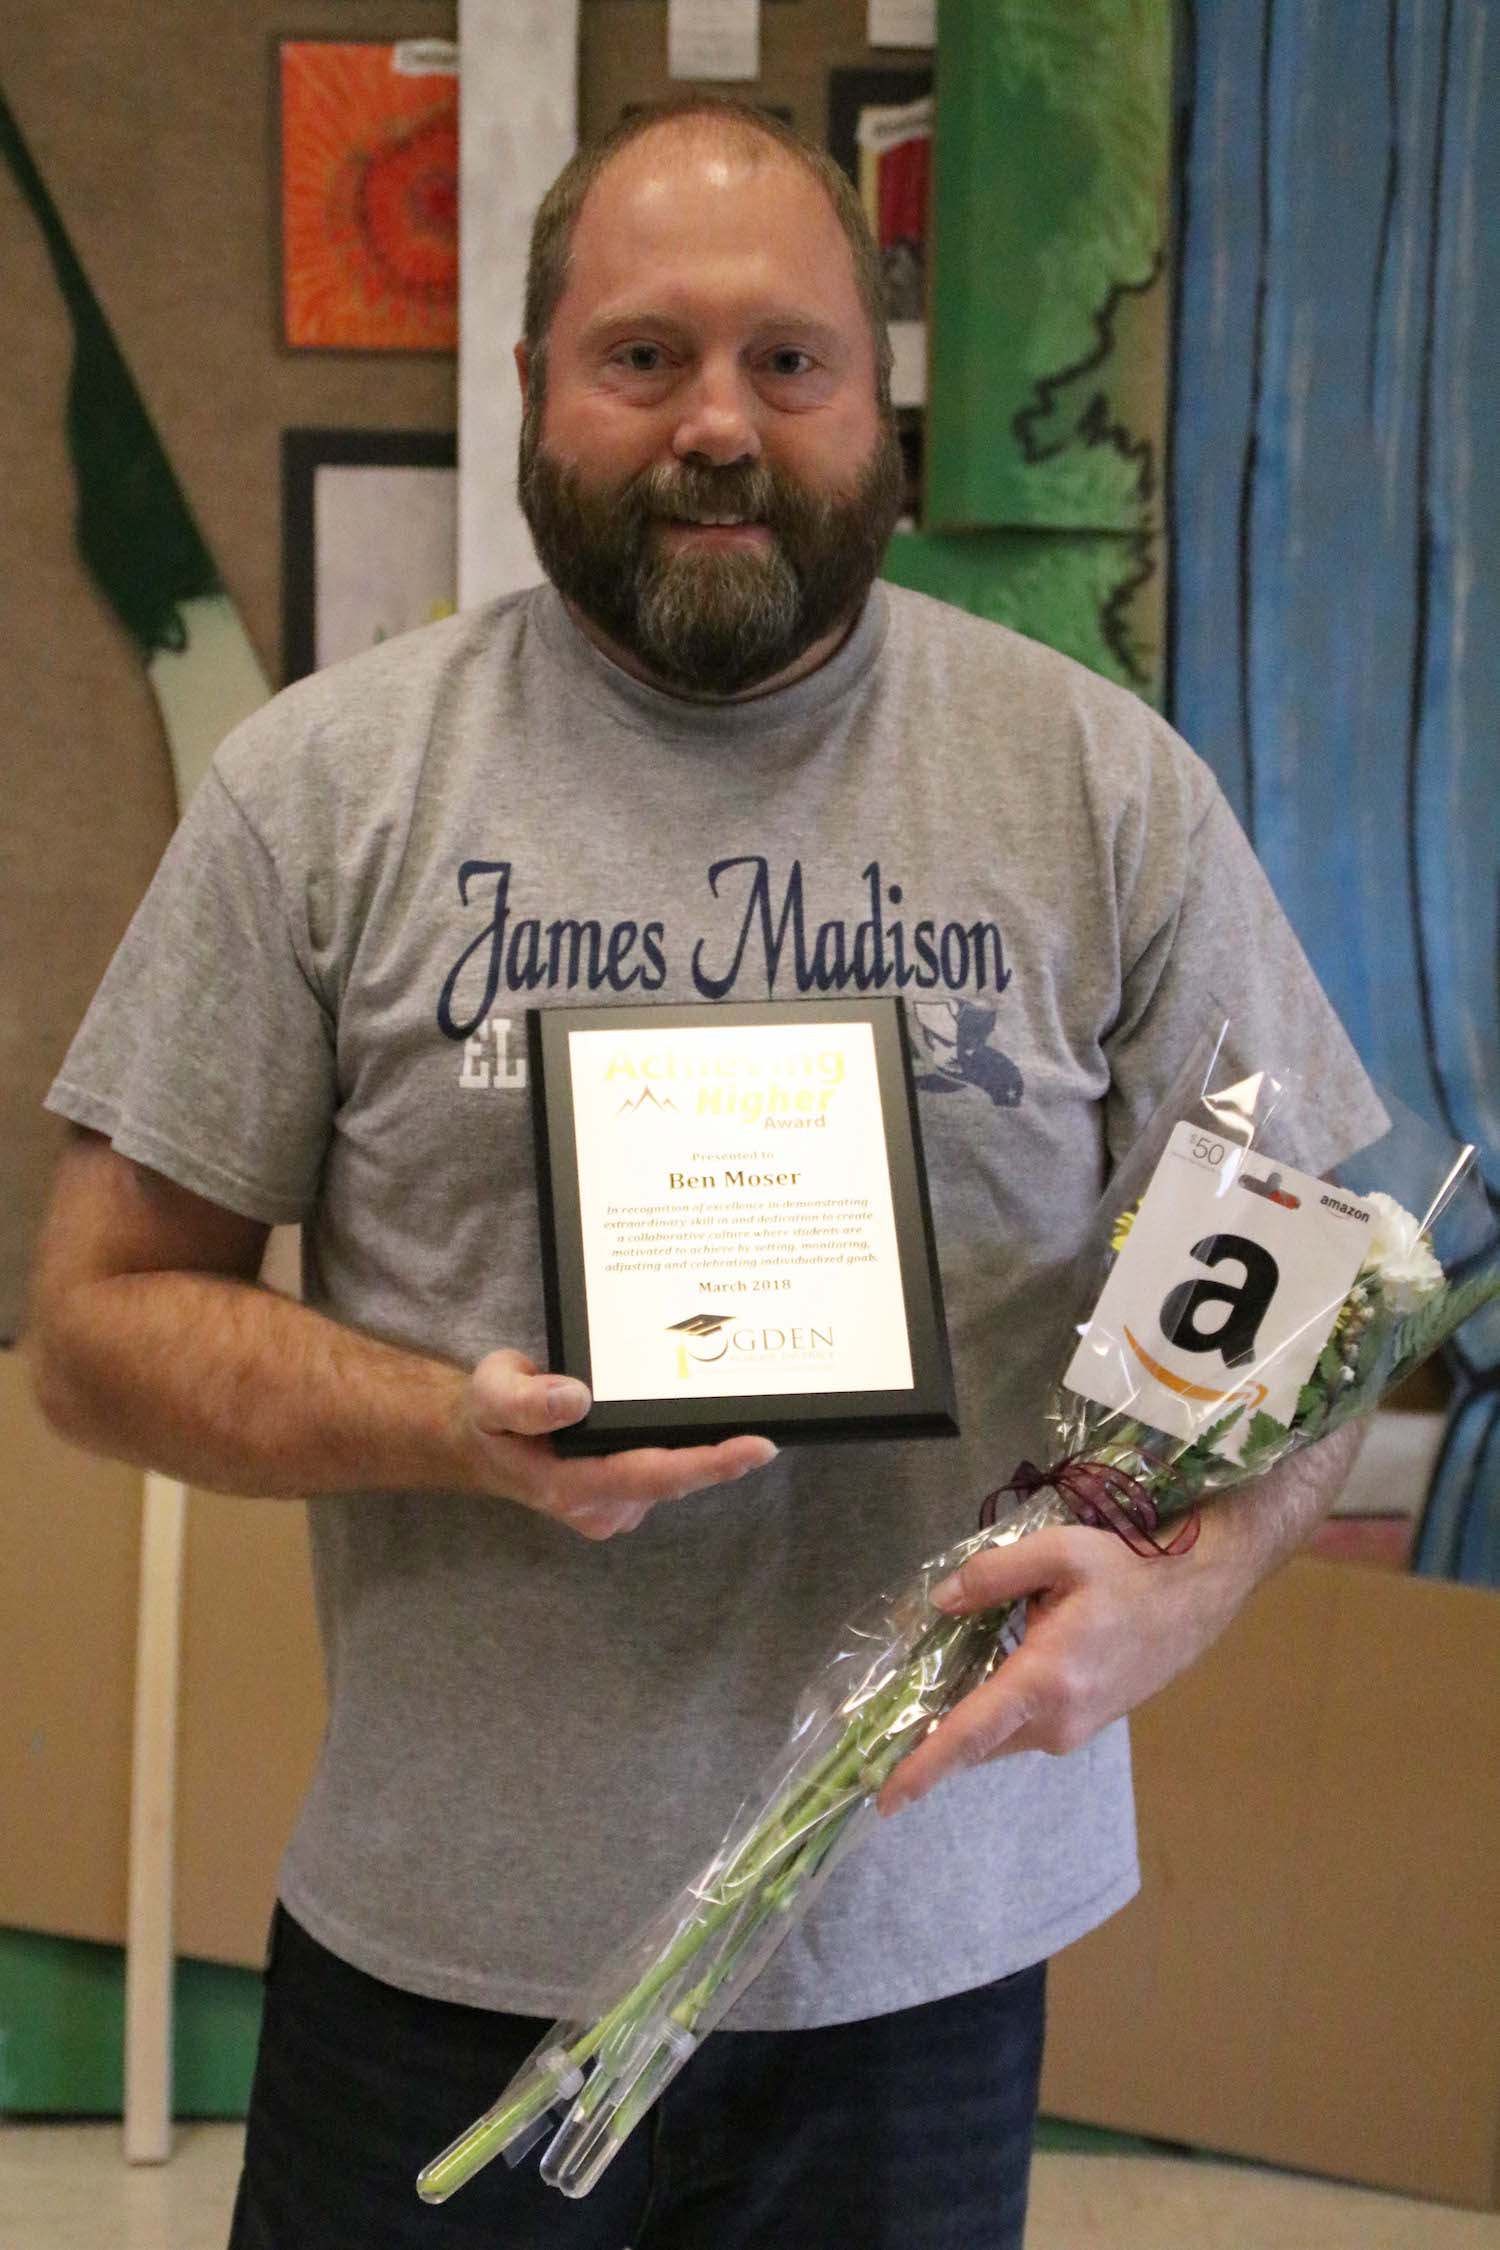 Congratulations to Ben Moser, James Madison teacher, for being honored with Ogden School District's March Achieving Higher Award!